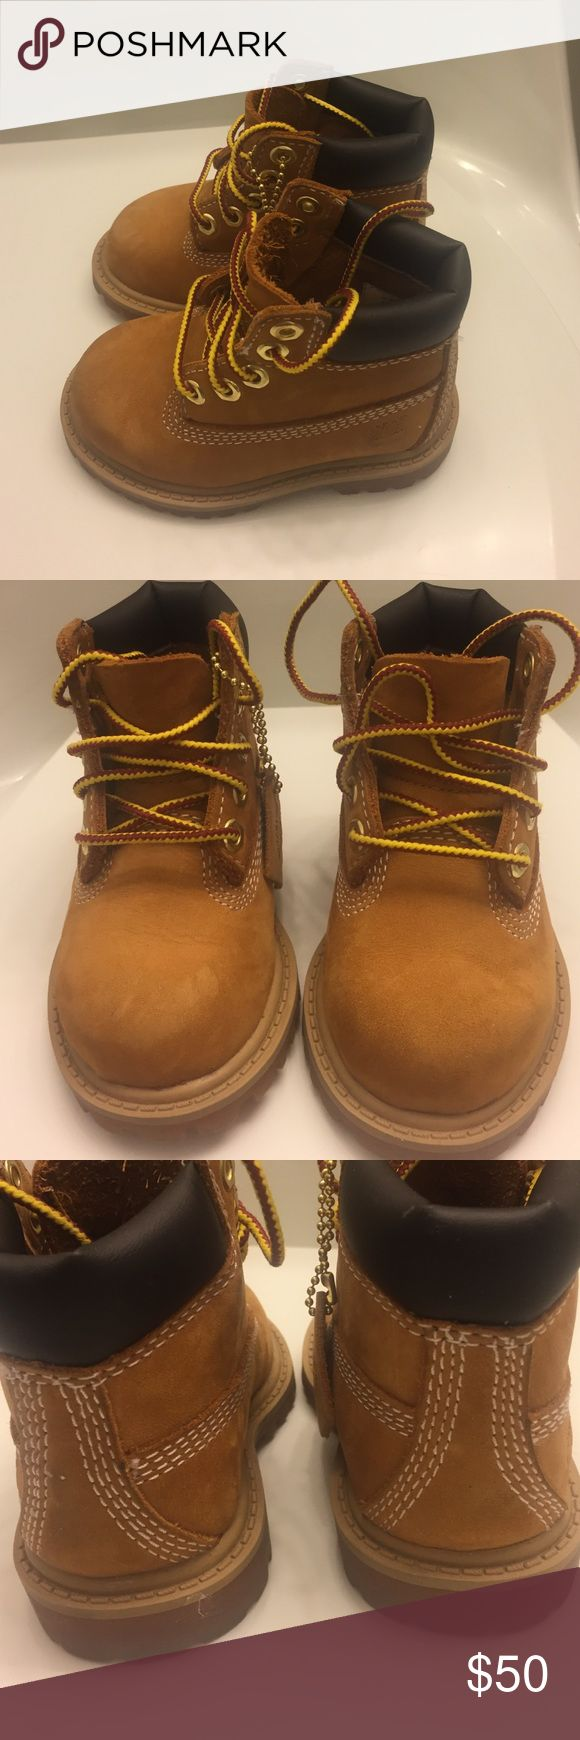 Classic timberland constructs Classic constructs for sale in toddler size 4. THESE ARE FOR BABIES. Just so there is not any confusion. They have been worn a couple times but are still in very good condition. Timberland Shoes Boots